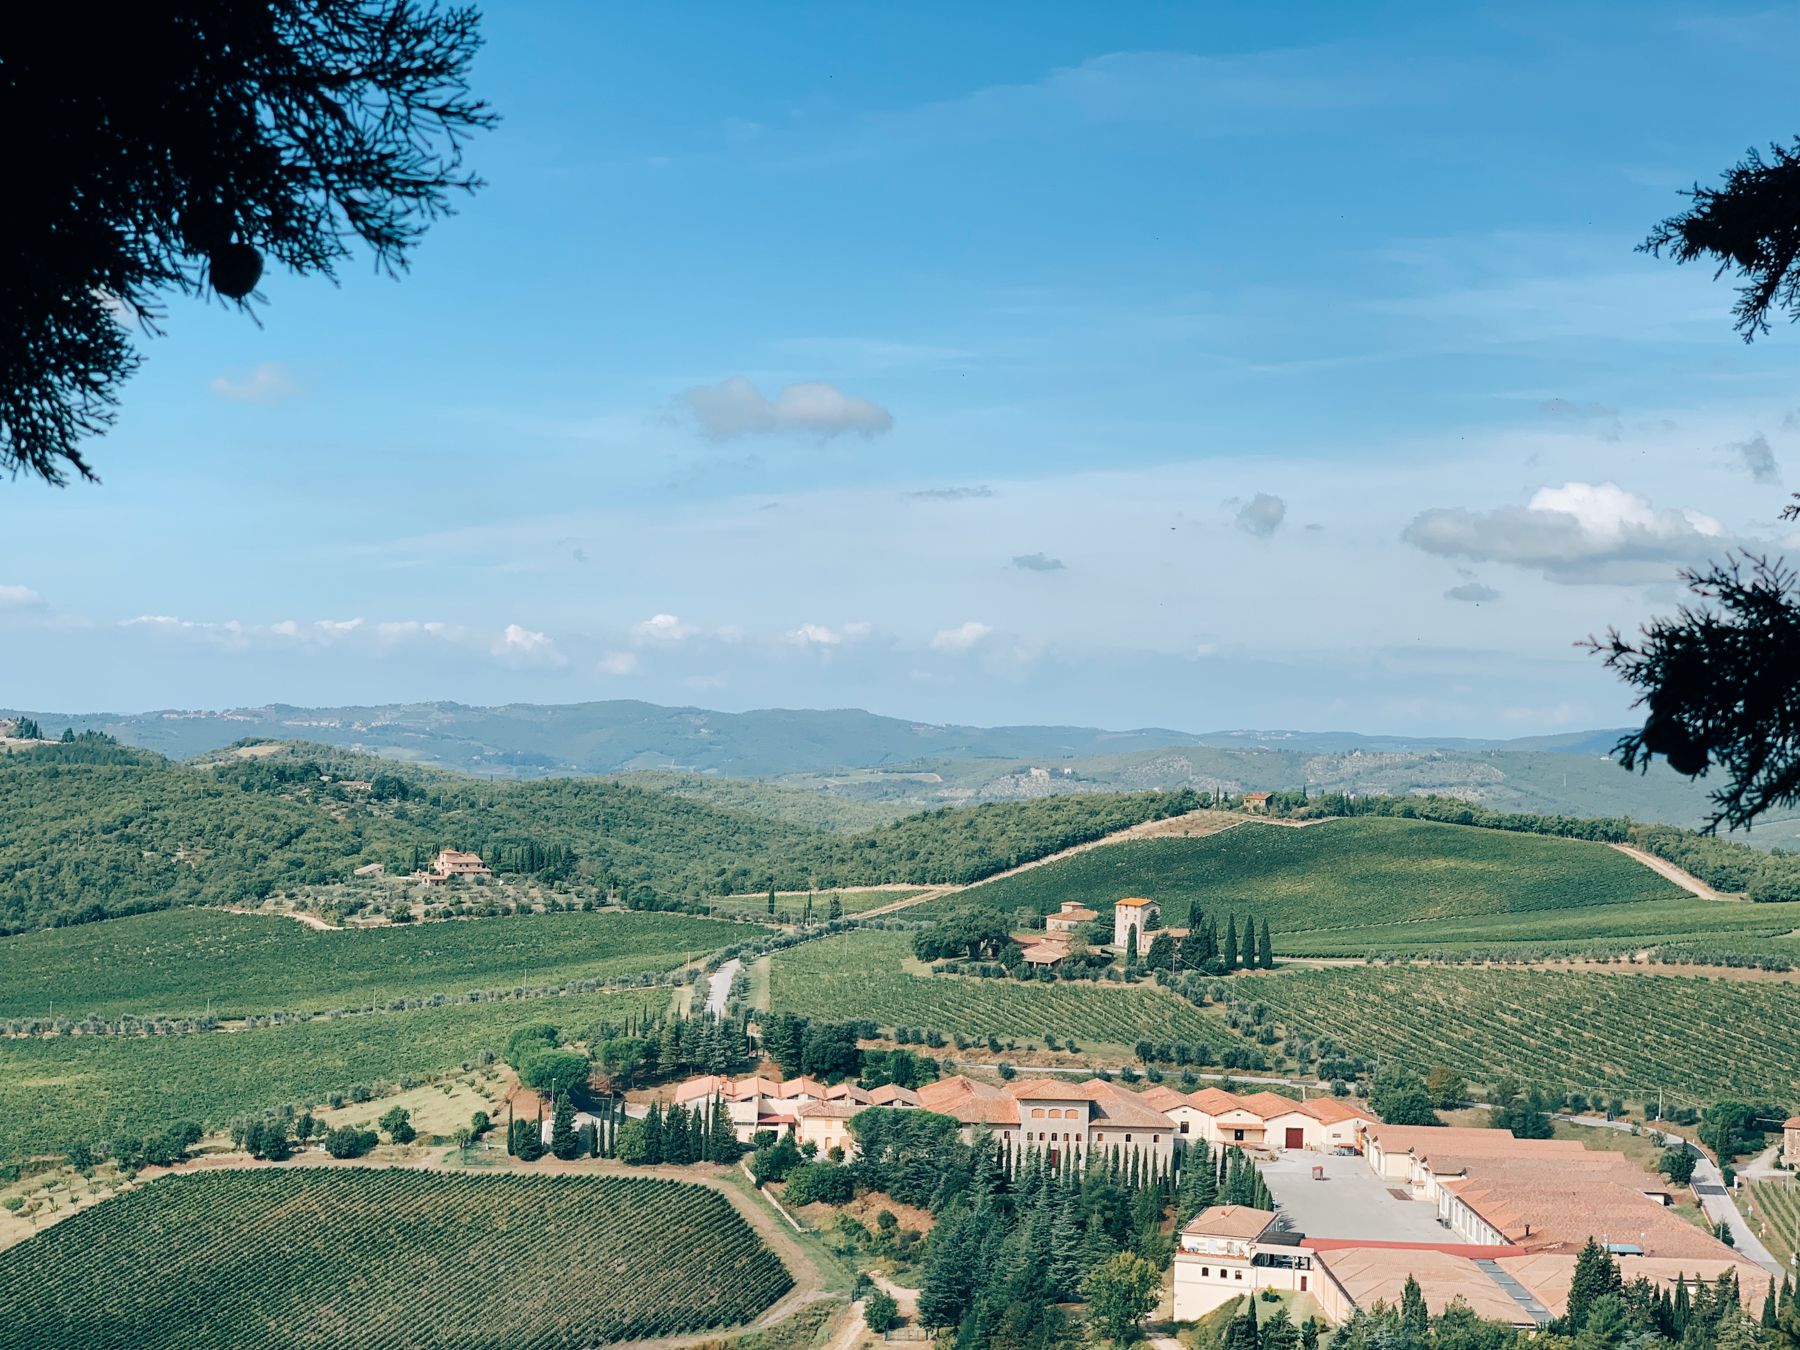 View of the vineyards from Castello di Brolio.